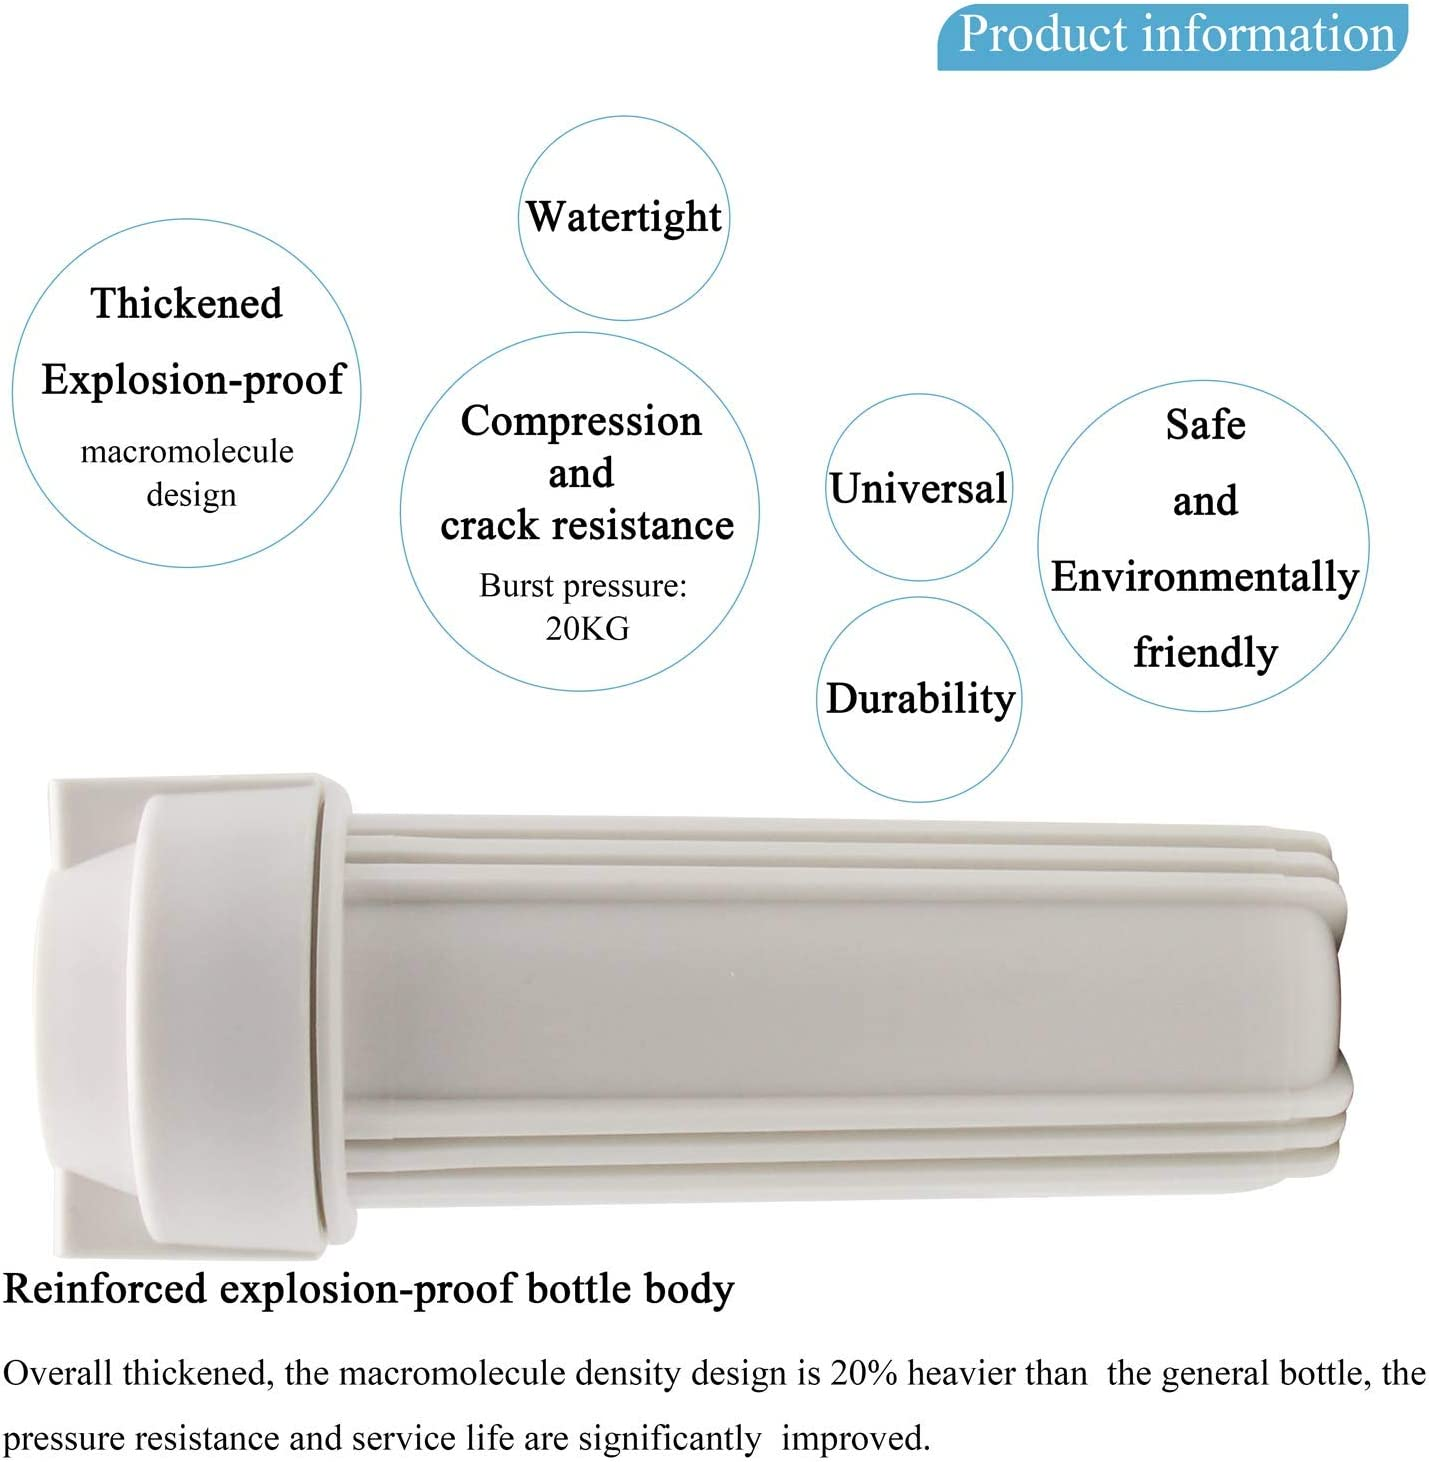 2.5 Inch x 10 Inch Filters 1//2 Inch Inlet//Outlet Whole House Tap Water Pre-Filter for Water Filters and Reverse Osmosis RO Systems BAOSHISHAN Filter Housing with 10 Filters